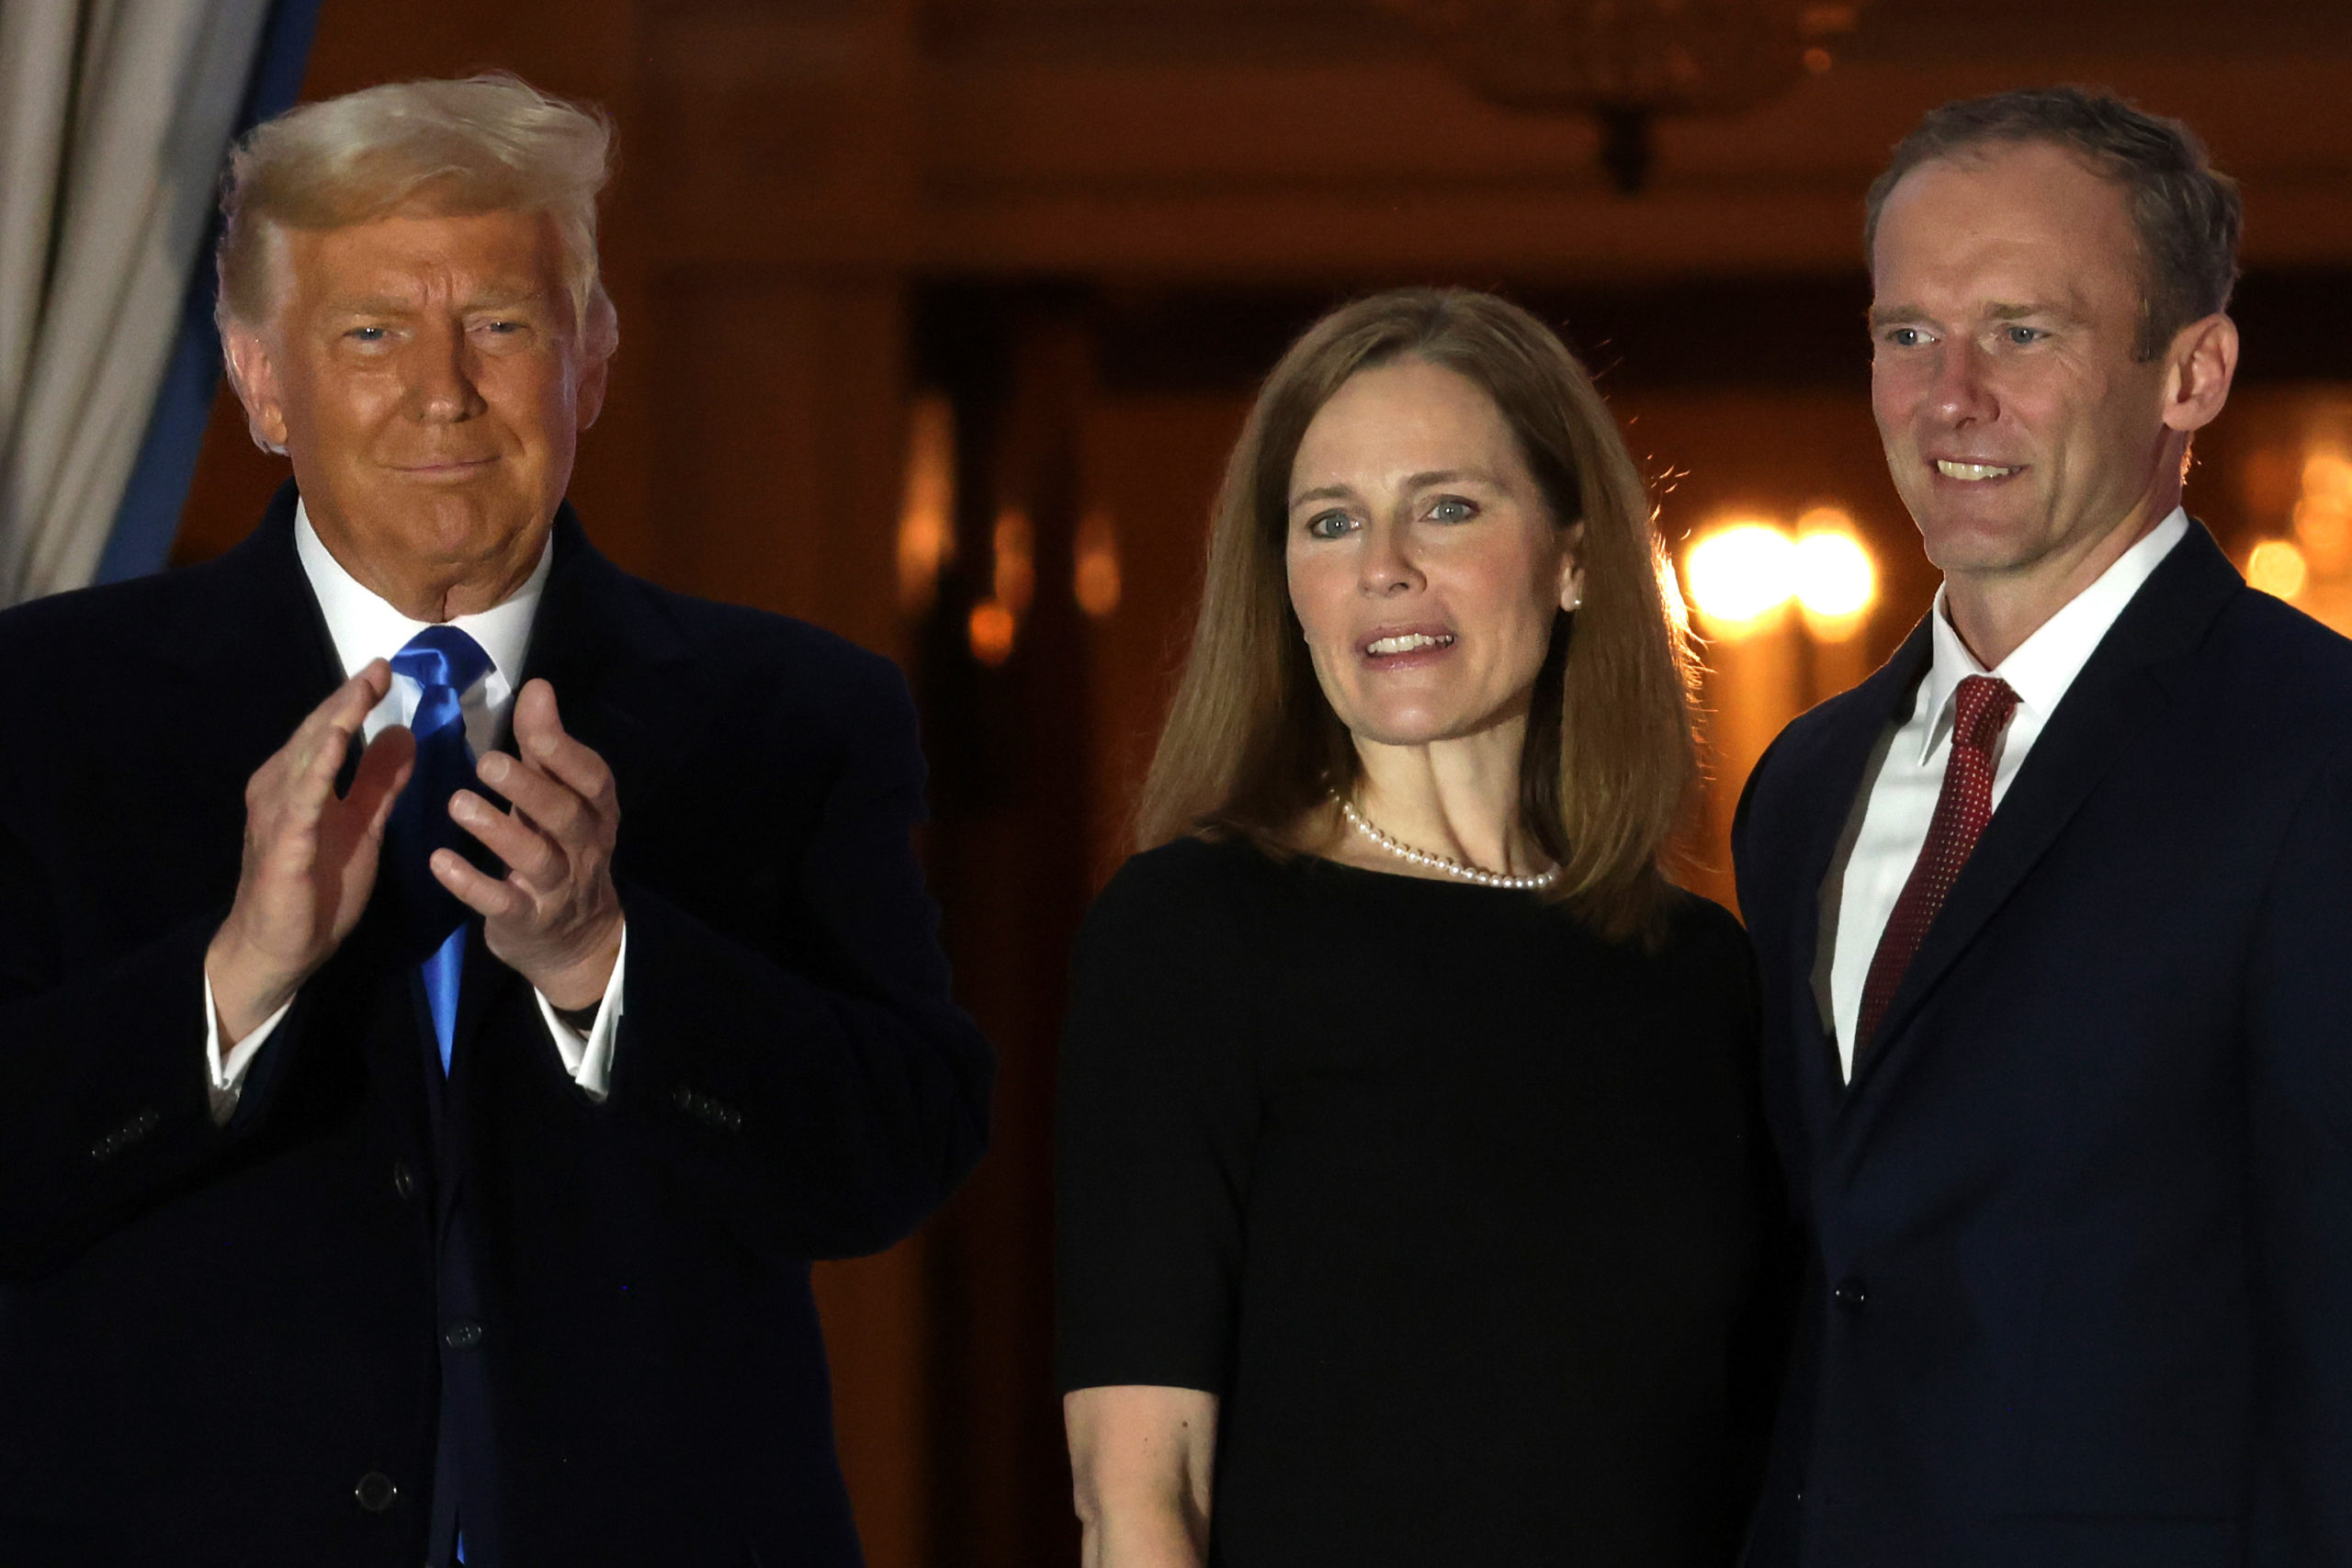 WASHINGTON, DC - OCTOBER 26: (L-R) U.S. President Donald Trump, newly sworn-in U.S. Supreme Court Associate Justice Amy Coney Barrett and her husband Jesse Barrett look on during a ceremonial swearing-in on the South Lawn of the White House October 26, 2020 in Washington, DC. The Senate confirmed Barrett's nomination to the Supreme Court today by a vote of 52-48. (Photo by Alex Wong/Getty Images)